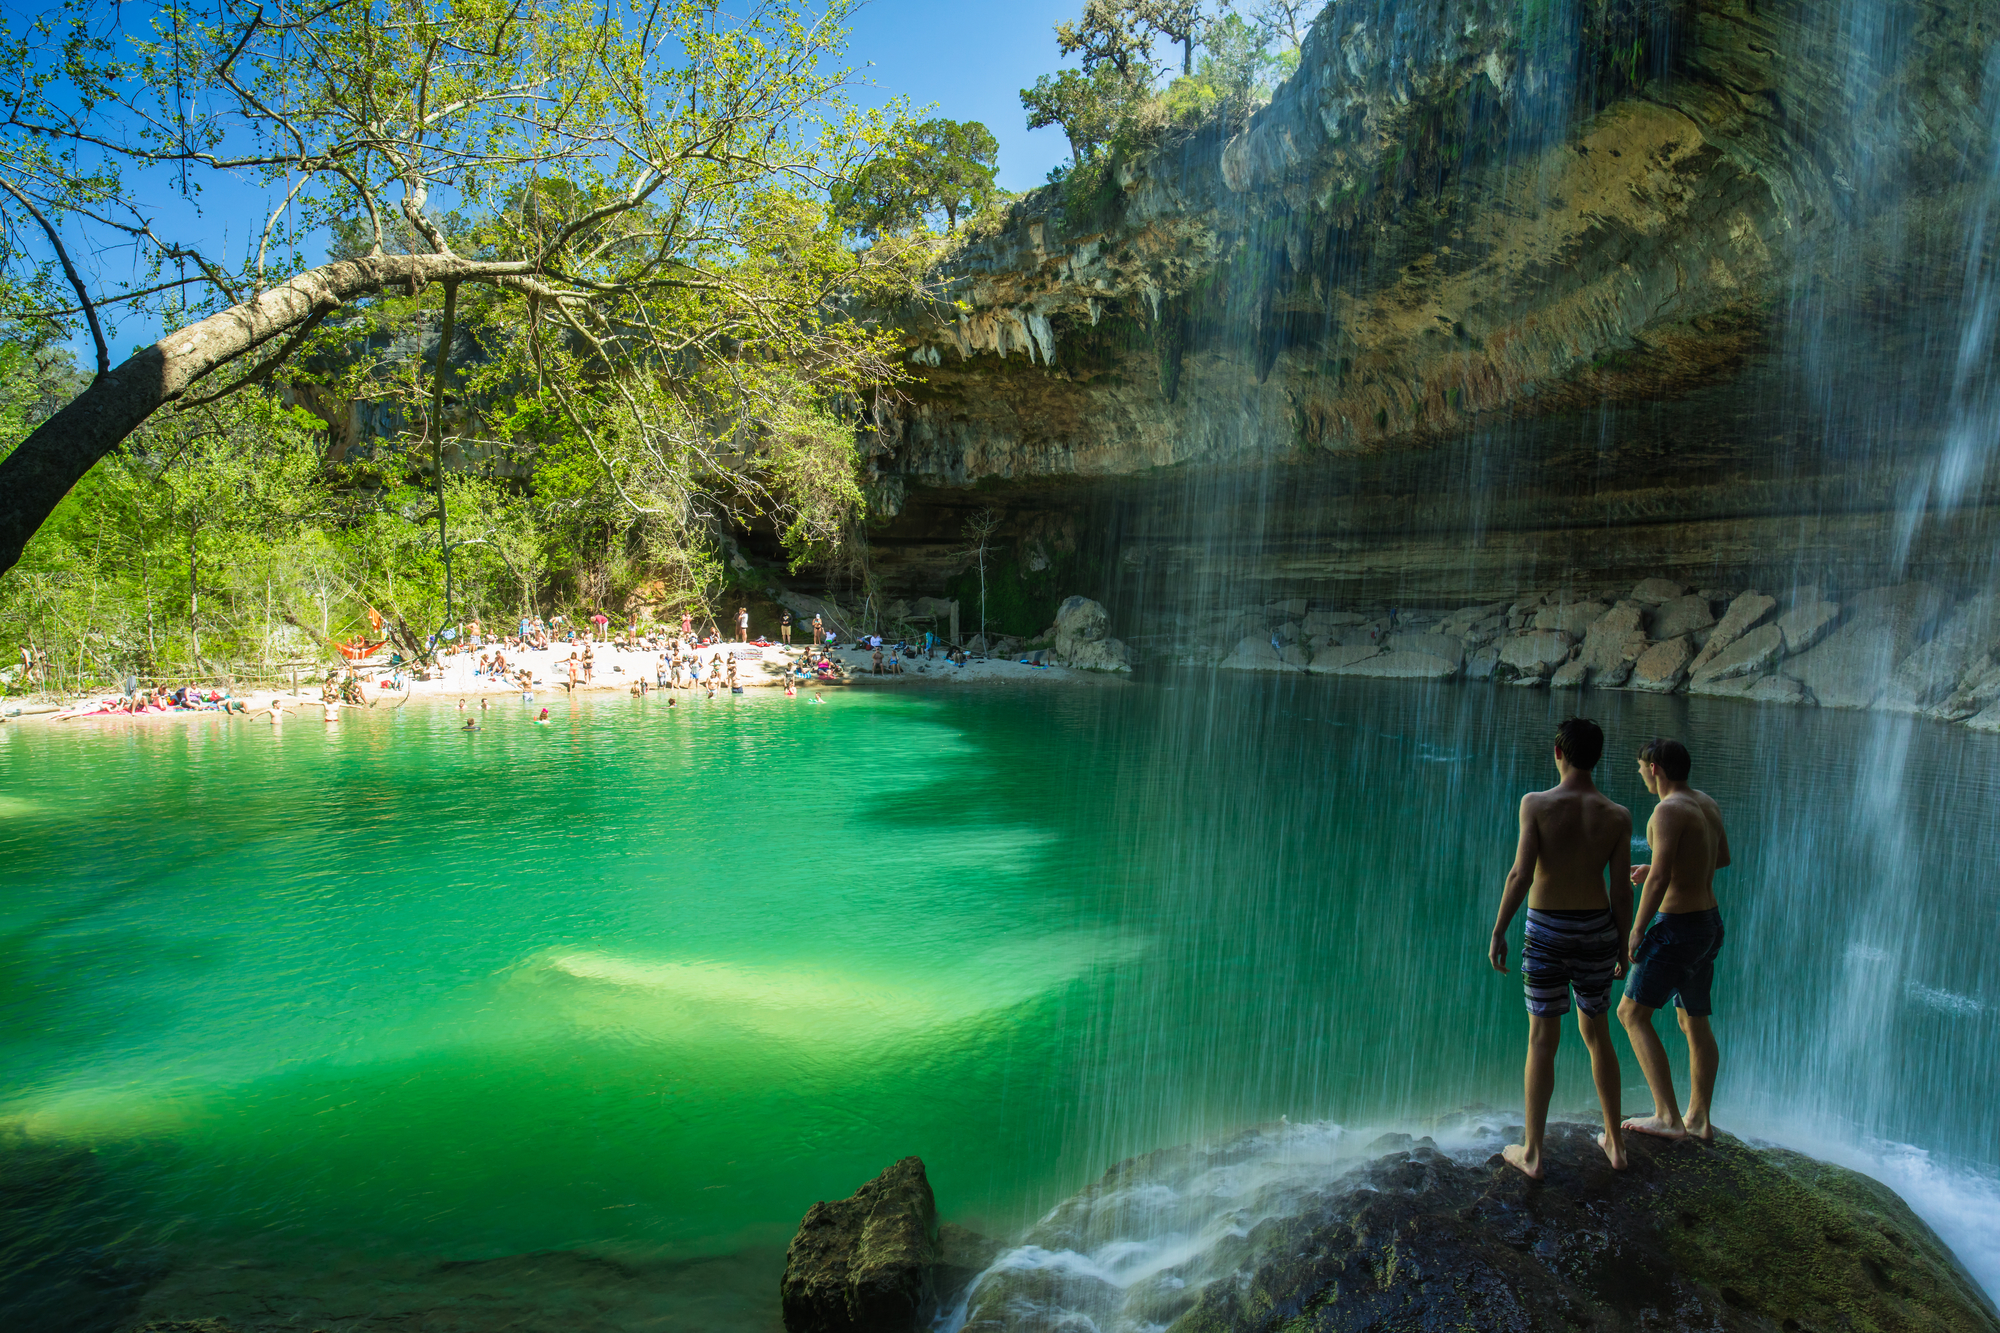 Southwest Austin Swimming Holes to Cool Off In This Summer